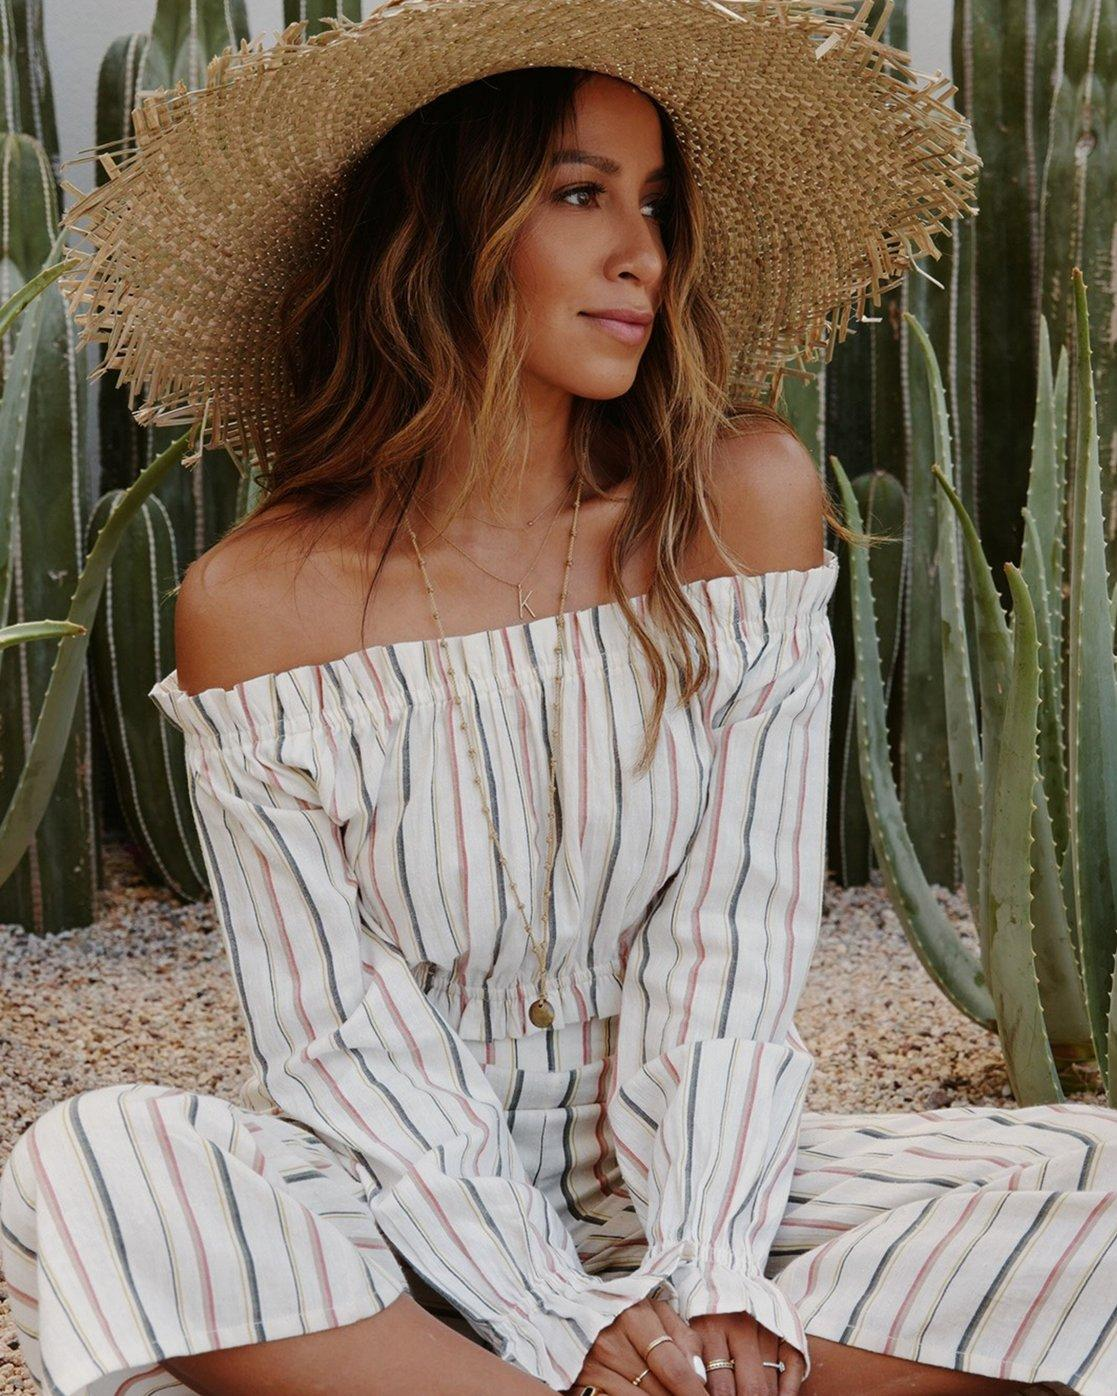 a9fad7741b379 Billabong. Women s Sincerely Jules Tulum Weathers Off-the-shoulder Top